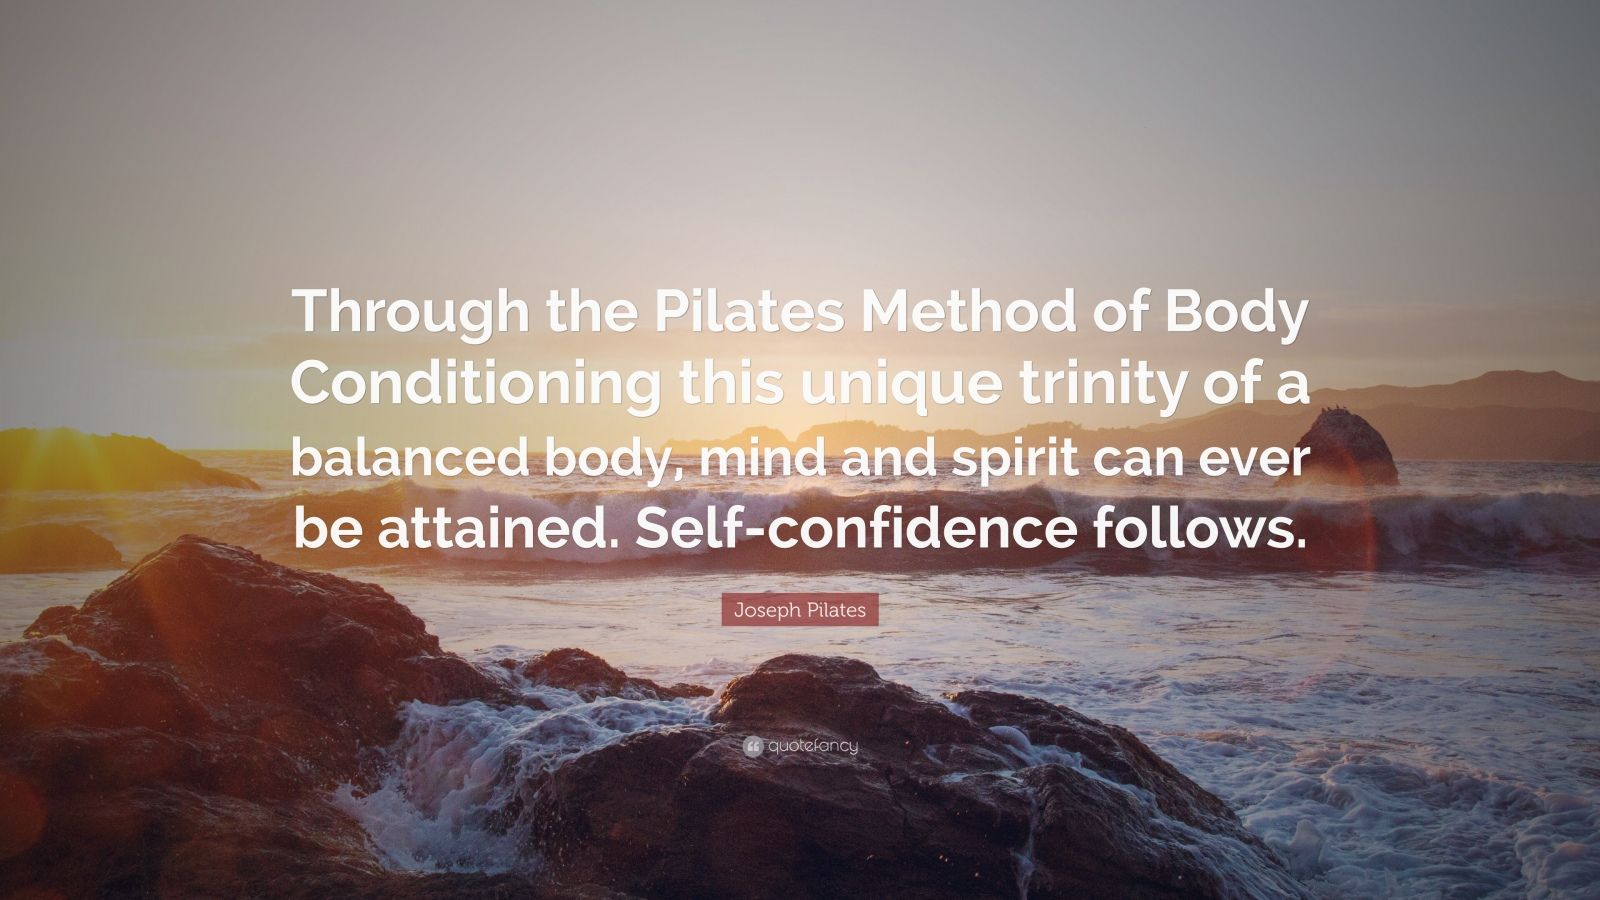 """Joseph Pilates Quote: """"Through the Pilates Method of Body Conditioning this unique trinity of a balanced body, mind and spirit can ever be attained. Self-confidence follows."""""""